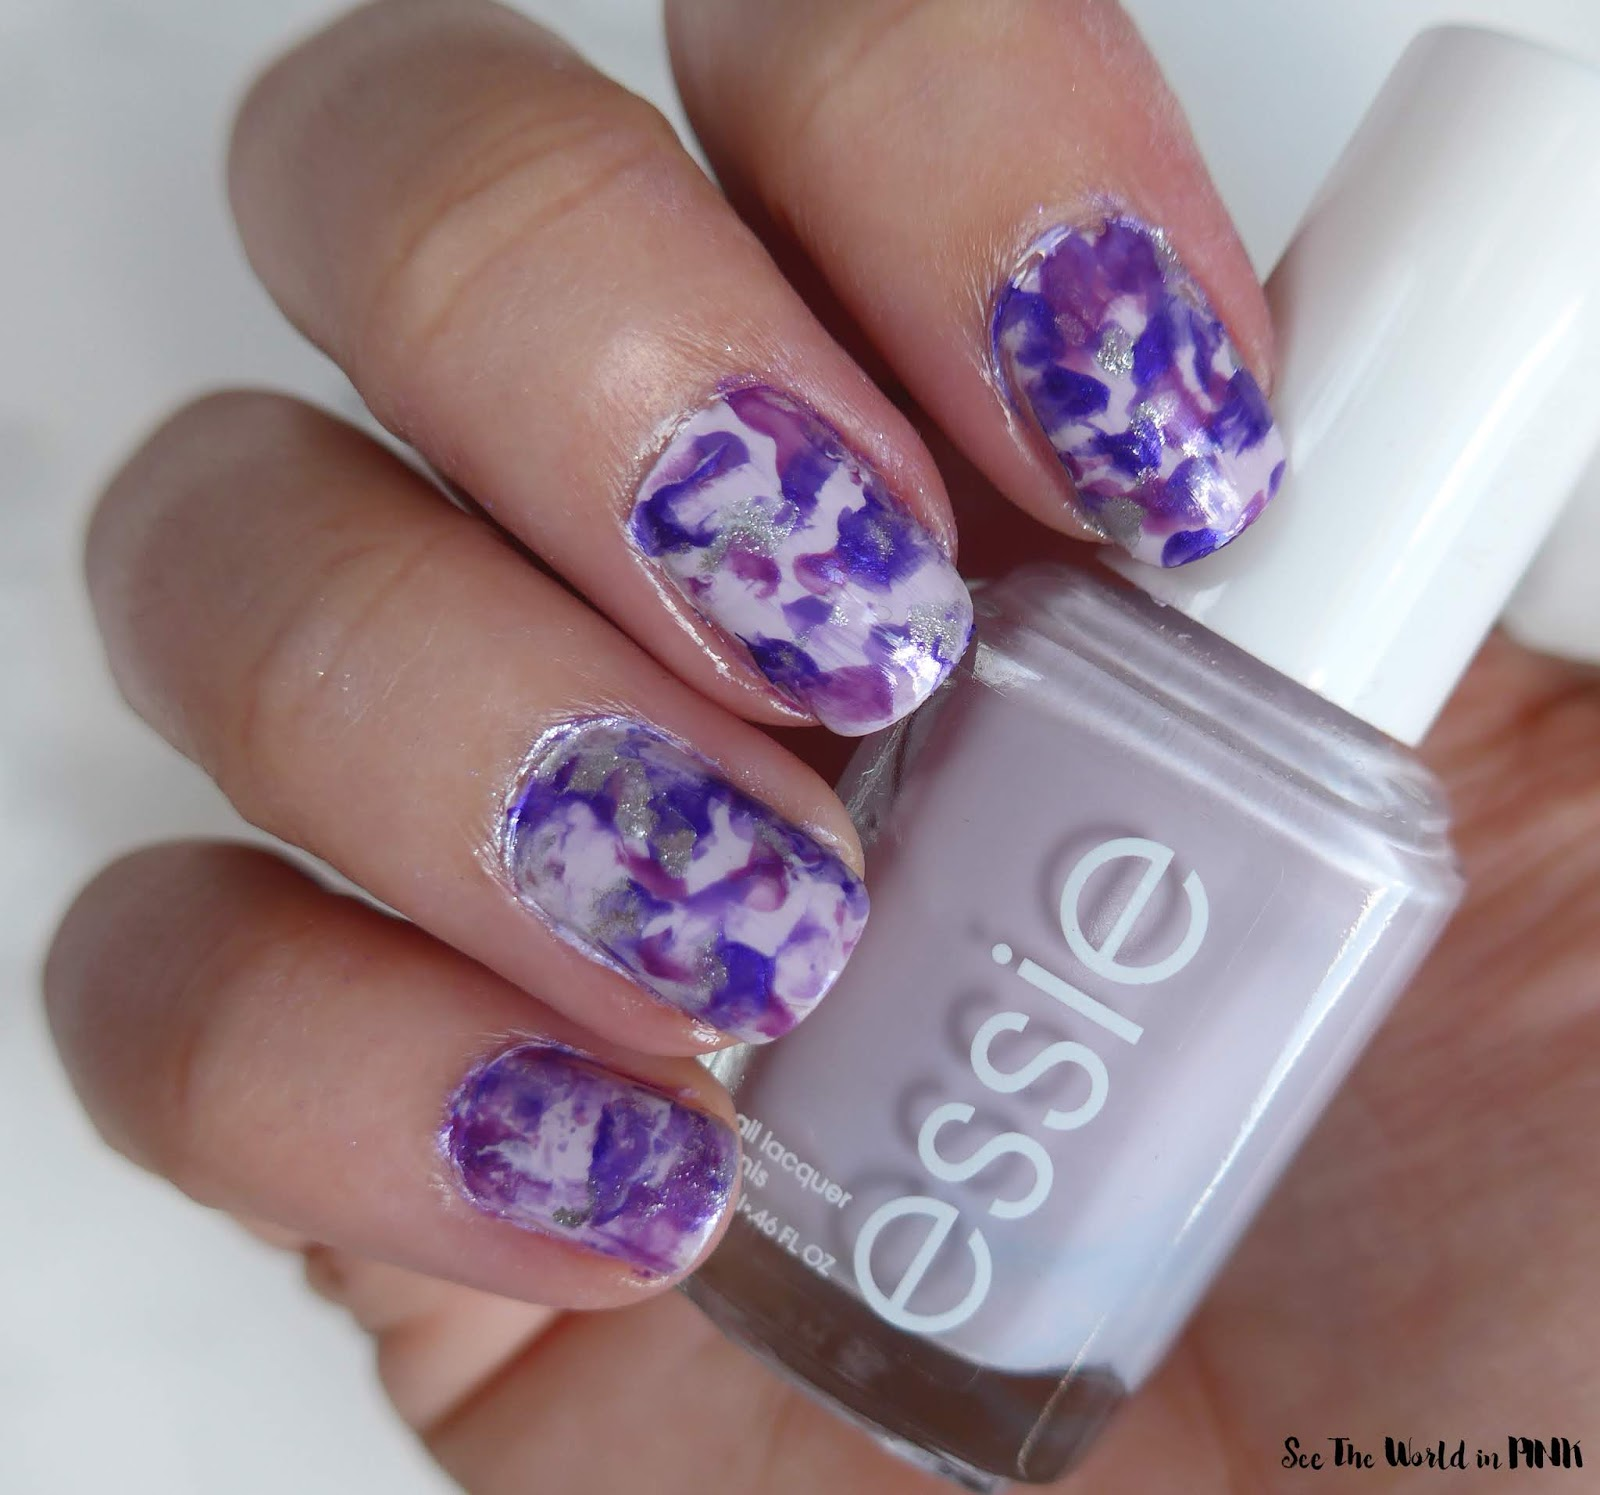 Manicure Monday - Purple and Glitter Smoosh Nails